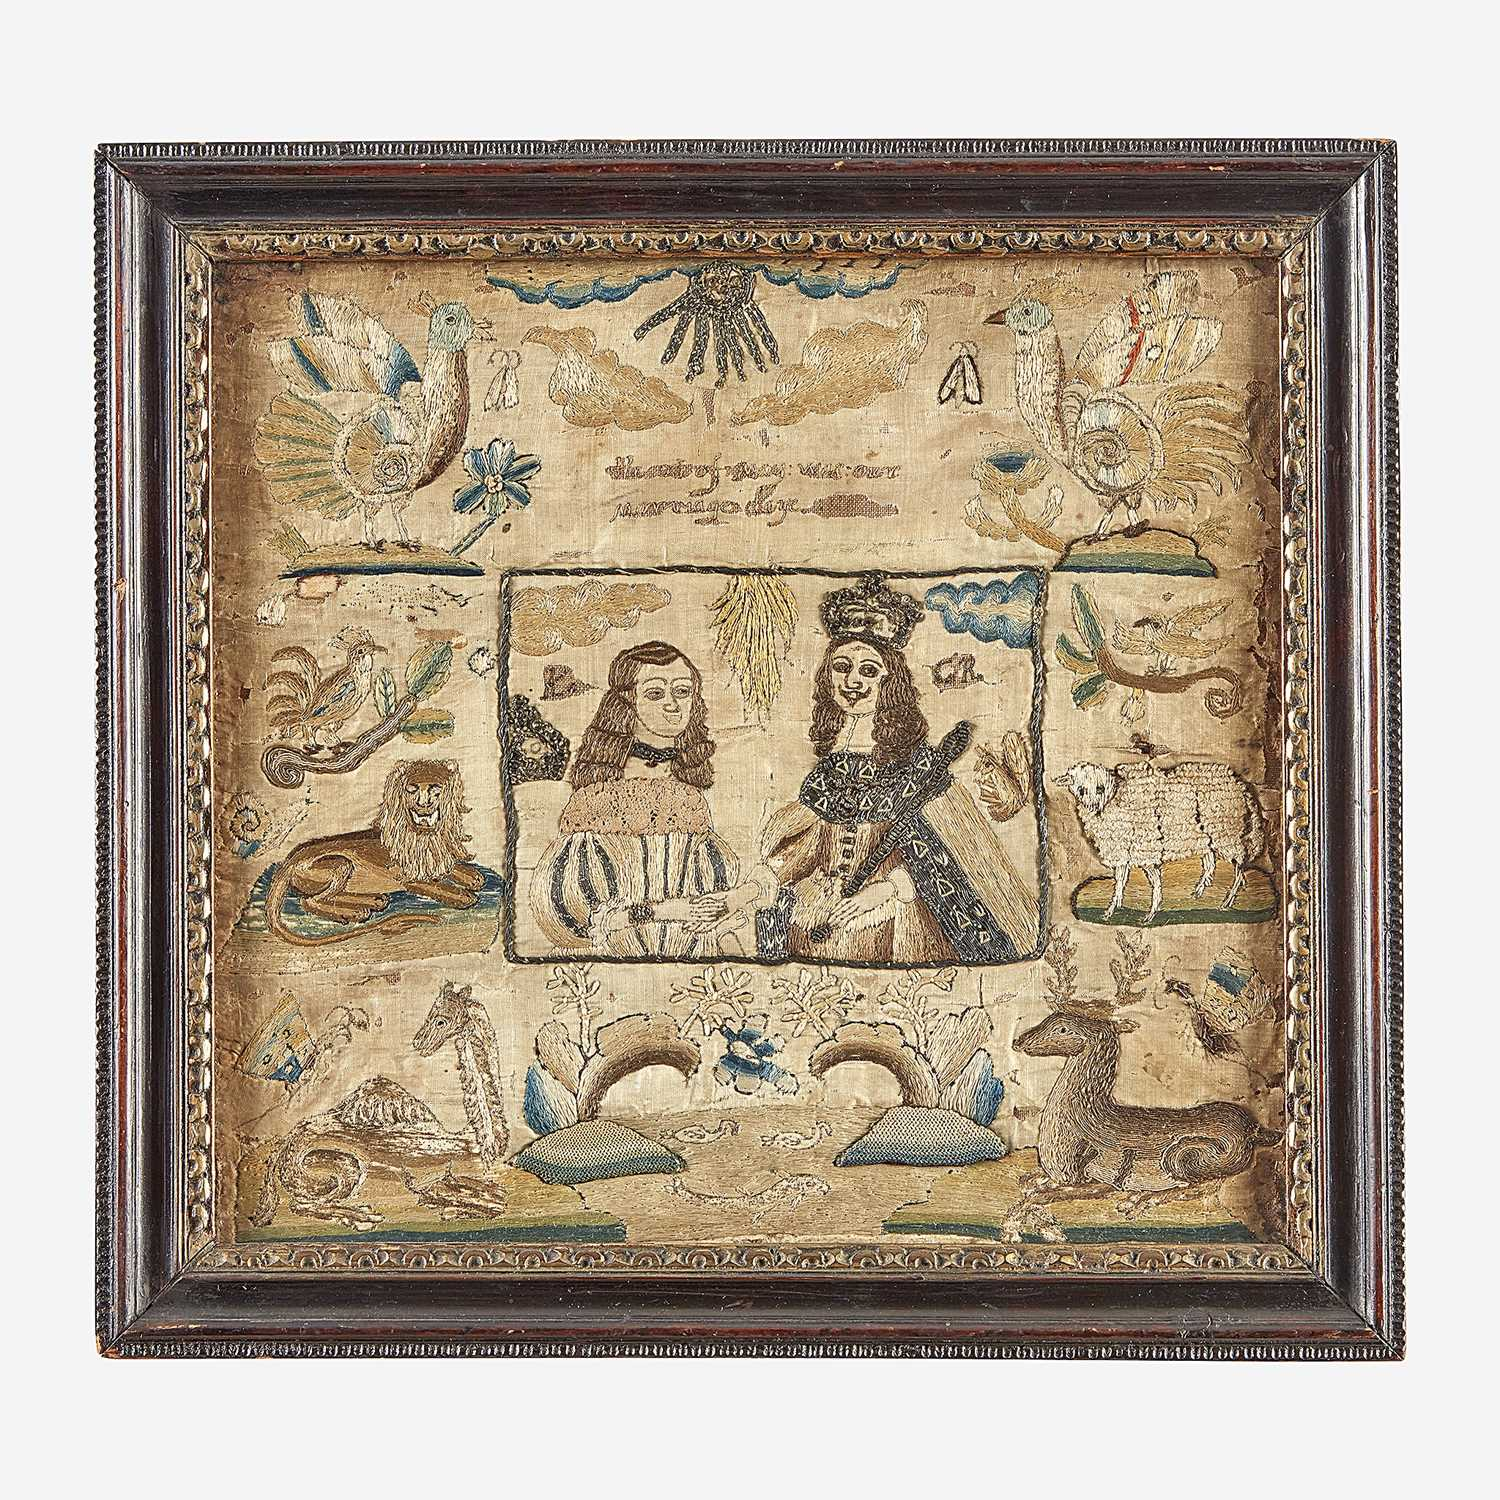 Lot 19 - A Charles II commemorative embroidered panel